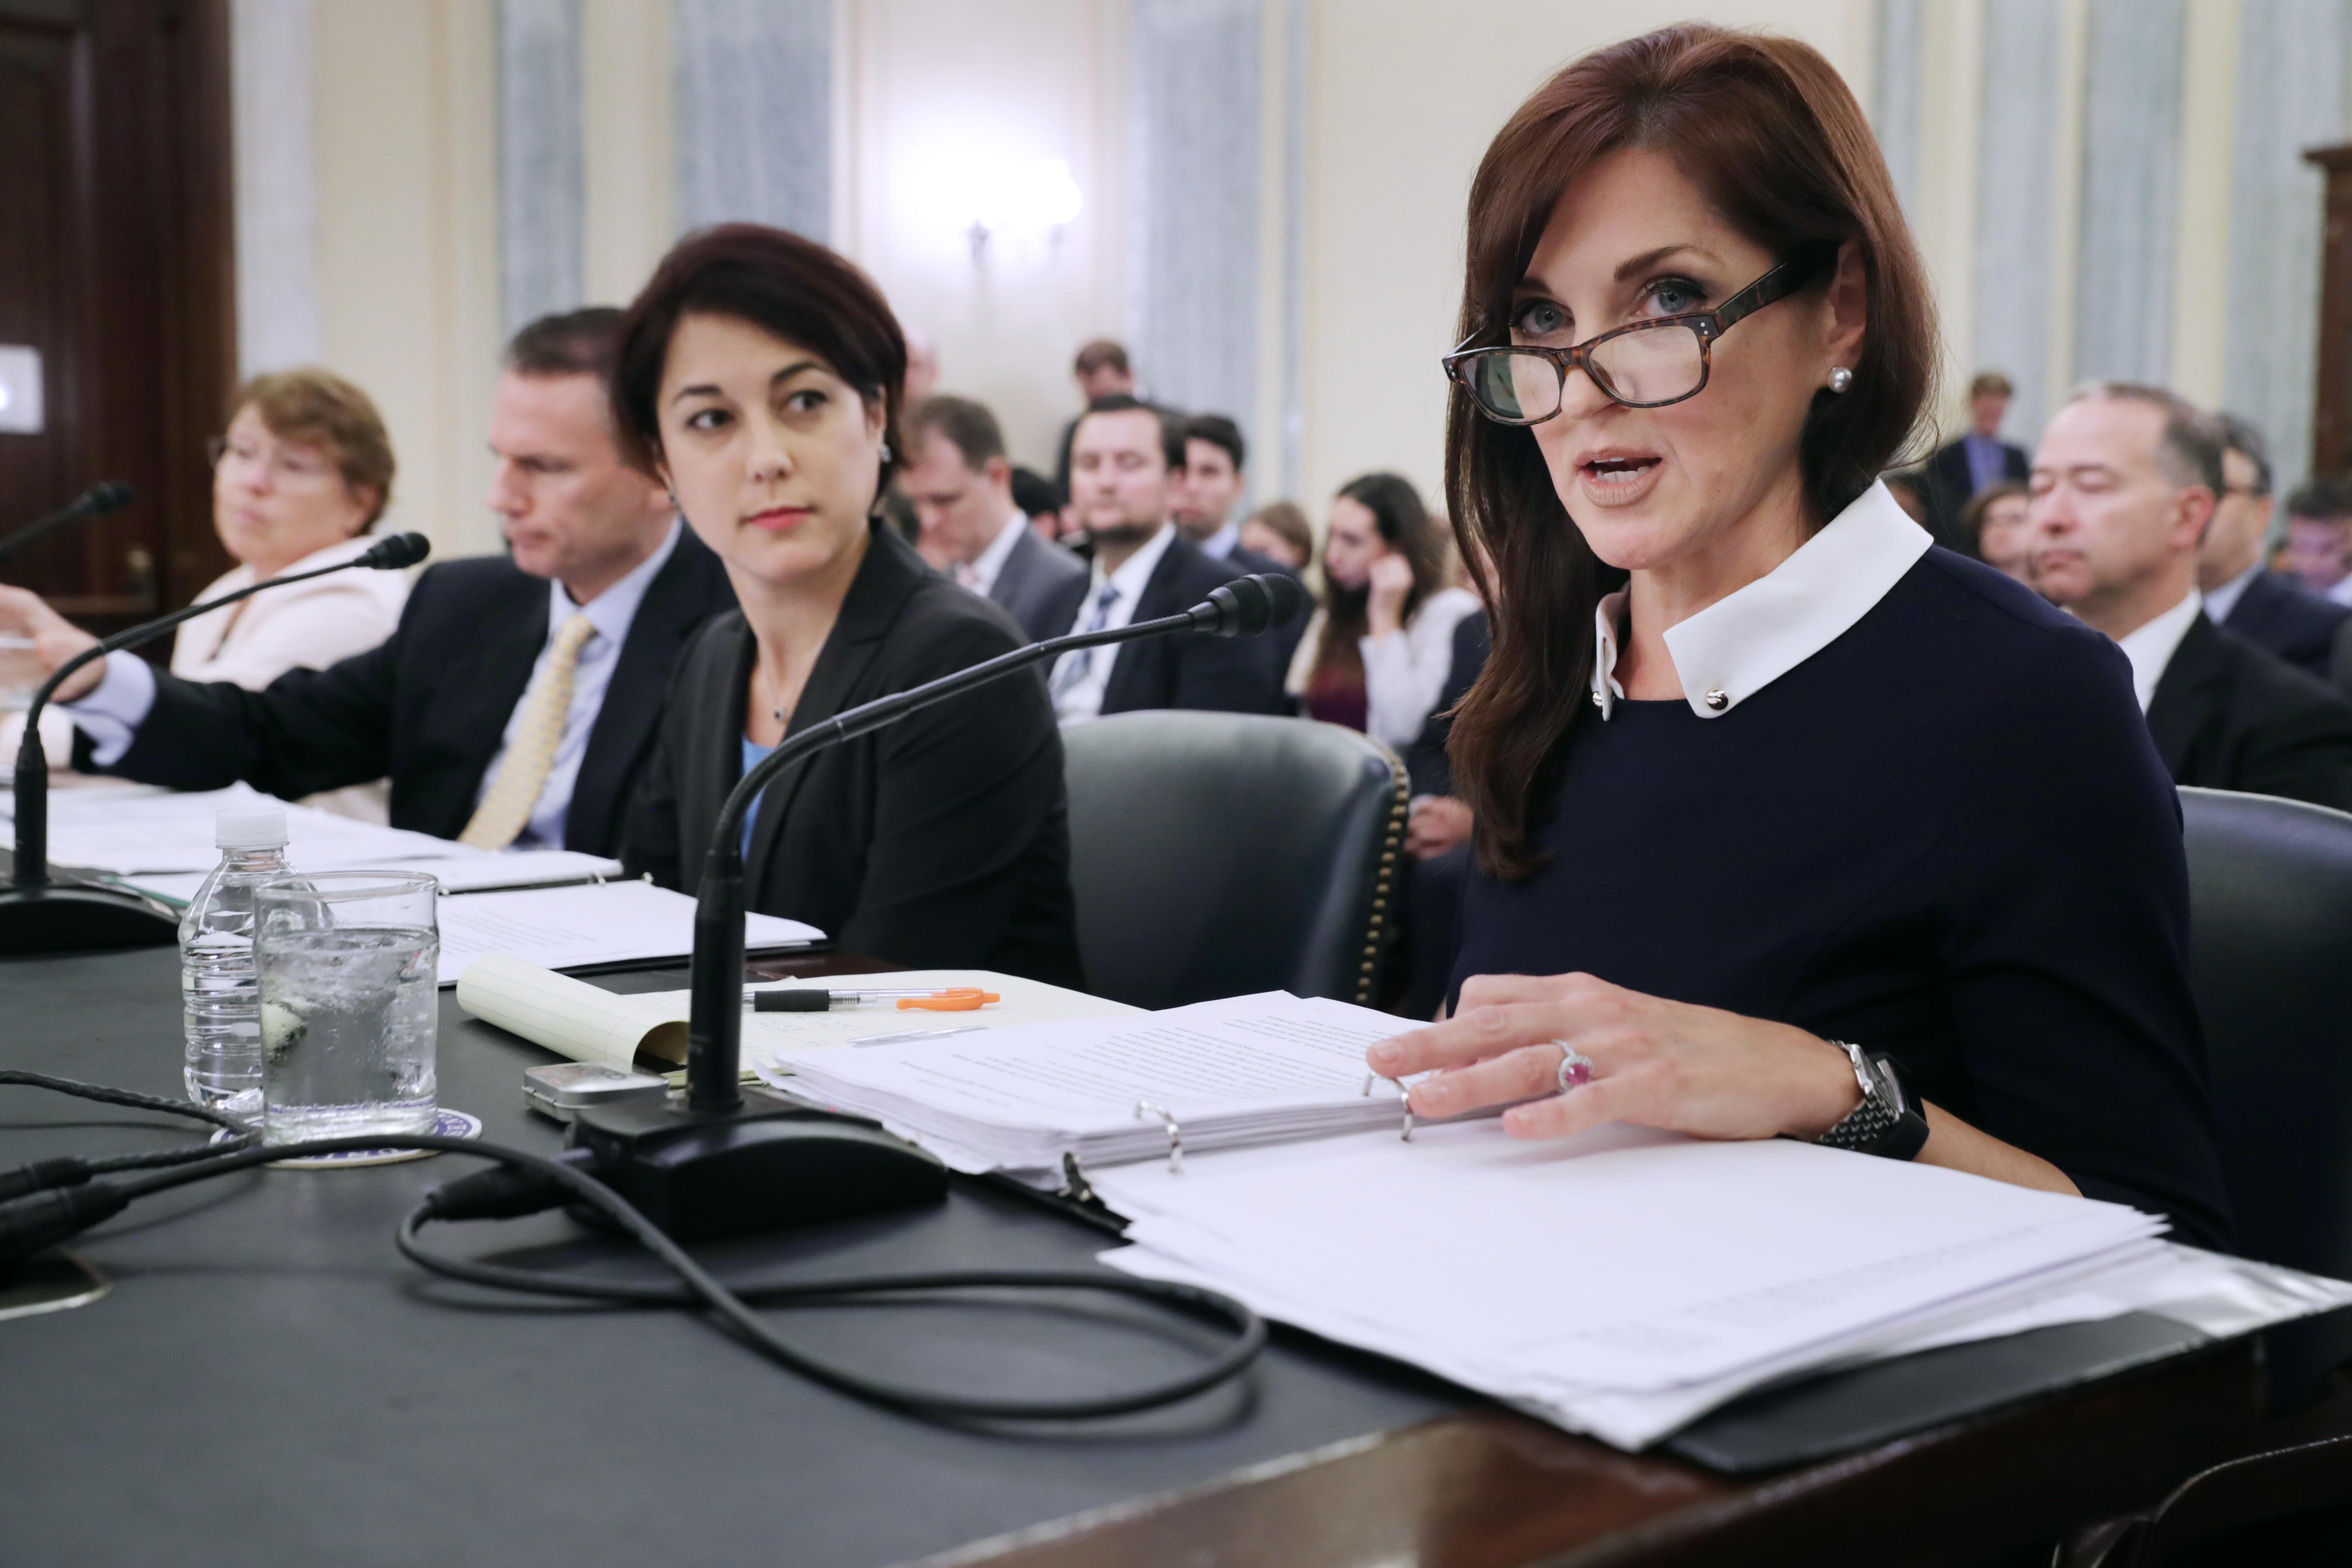 Center for Democracy & Technology CEO Nuala O'Connor, right, testifies Wednesday before the Senate Commerce, Science and Transportation Committee about consumer data privacy.